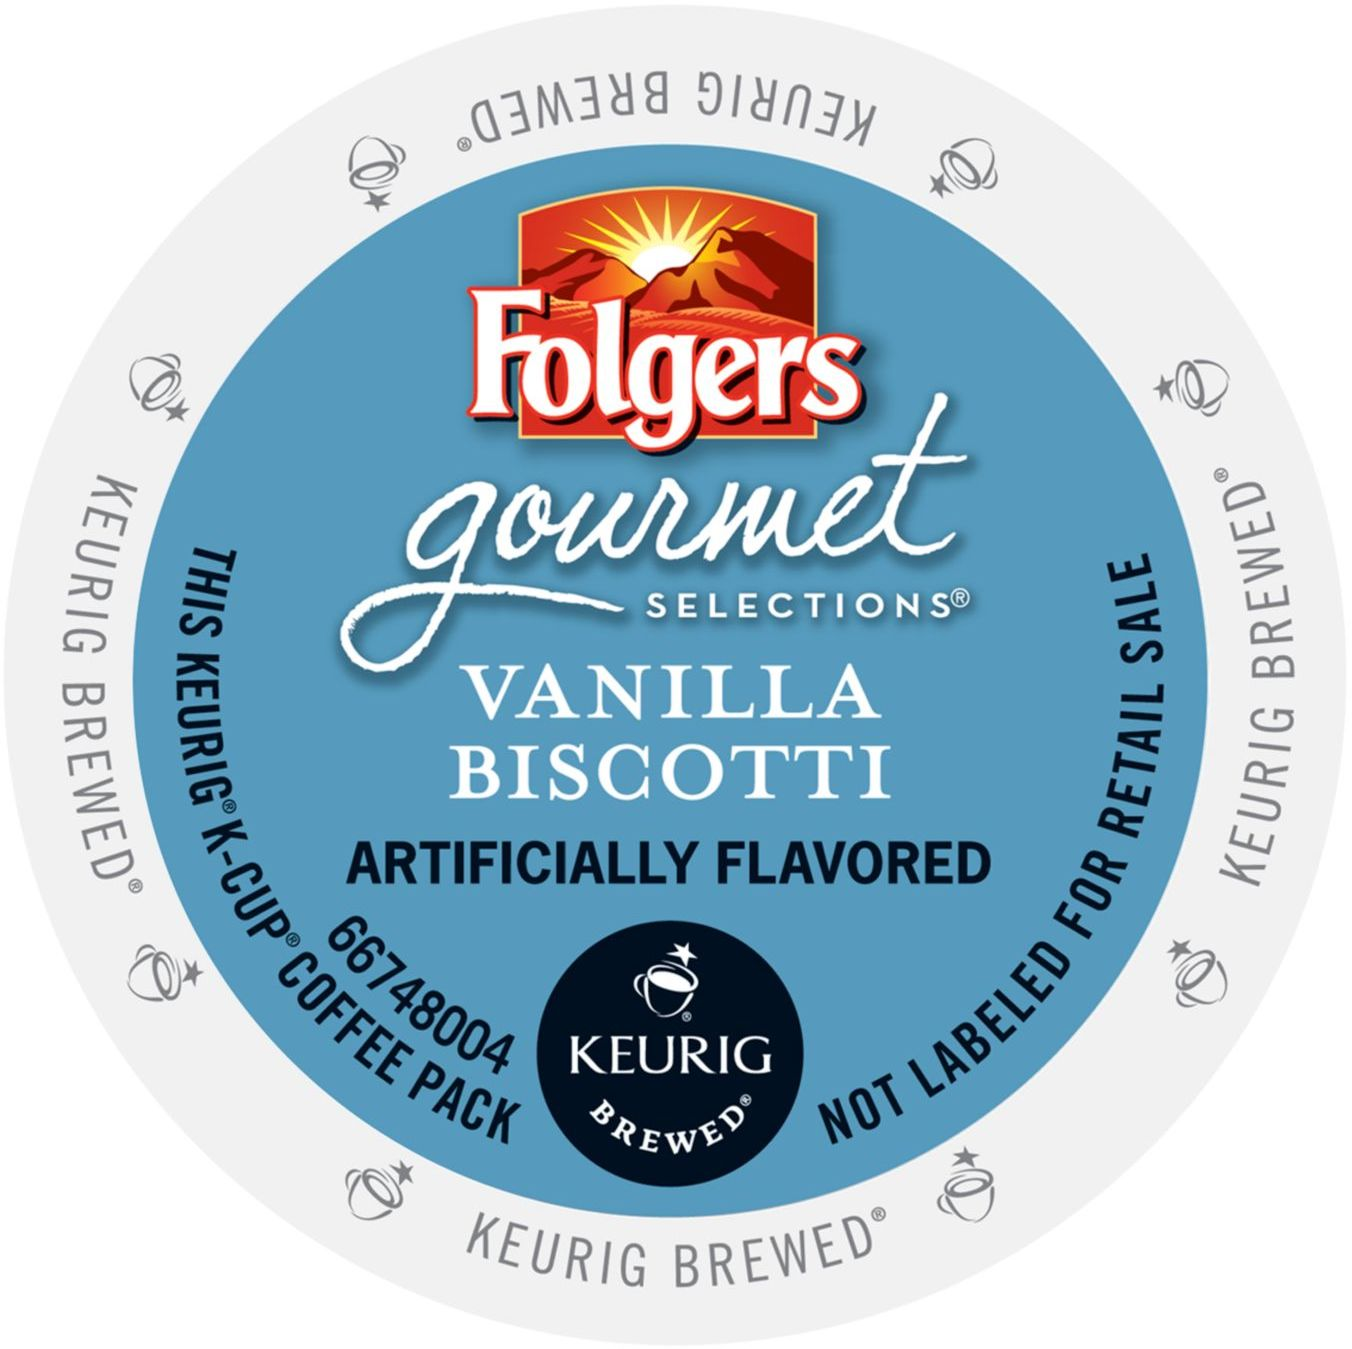 Folgers Gourmet Selections Vanilla Biscotti Coffee, K-Cup Portion Pack for Keurig Brewers... by Green Mountain